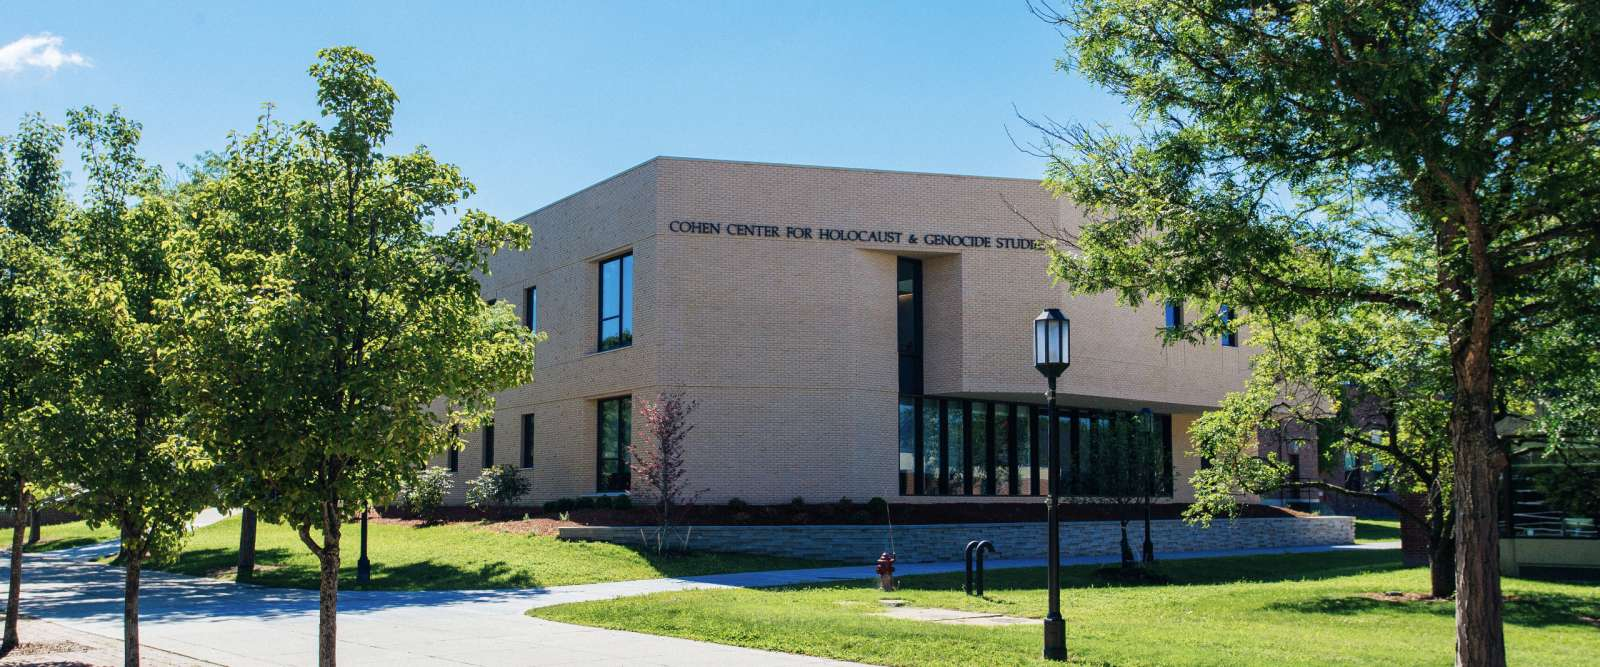 Cohen Center for Holocaust and Genocide Studies, exterior